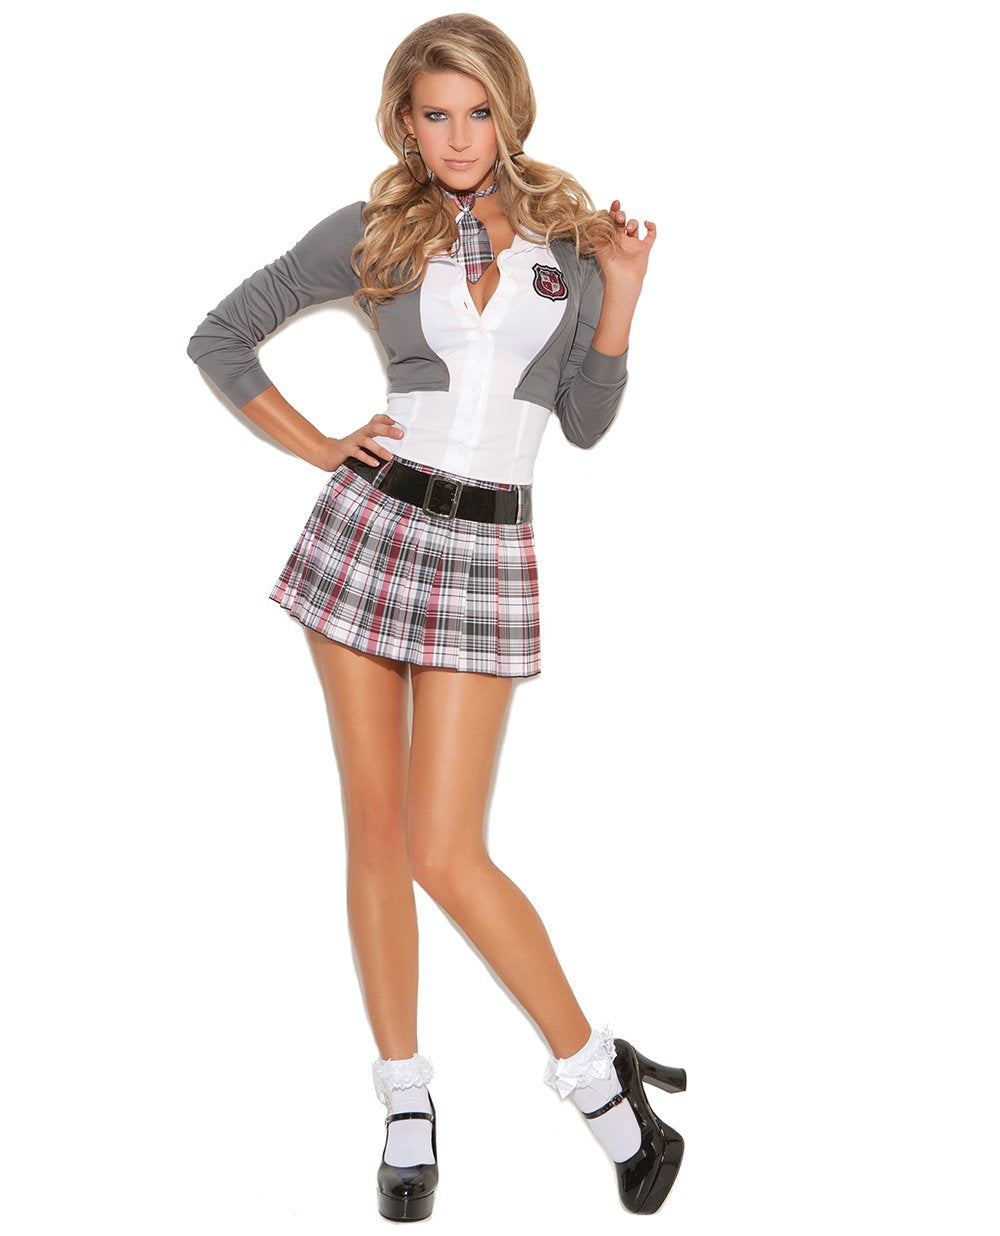 Queen of Detention Naughty School Girl Outfit costumes size mediumcolor grey/whiteNakees